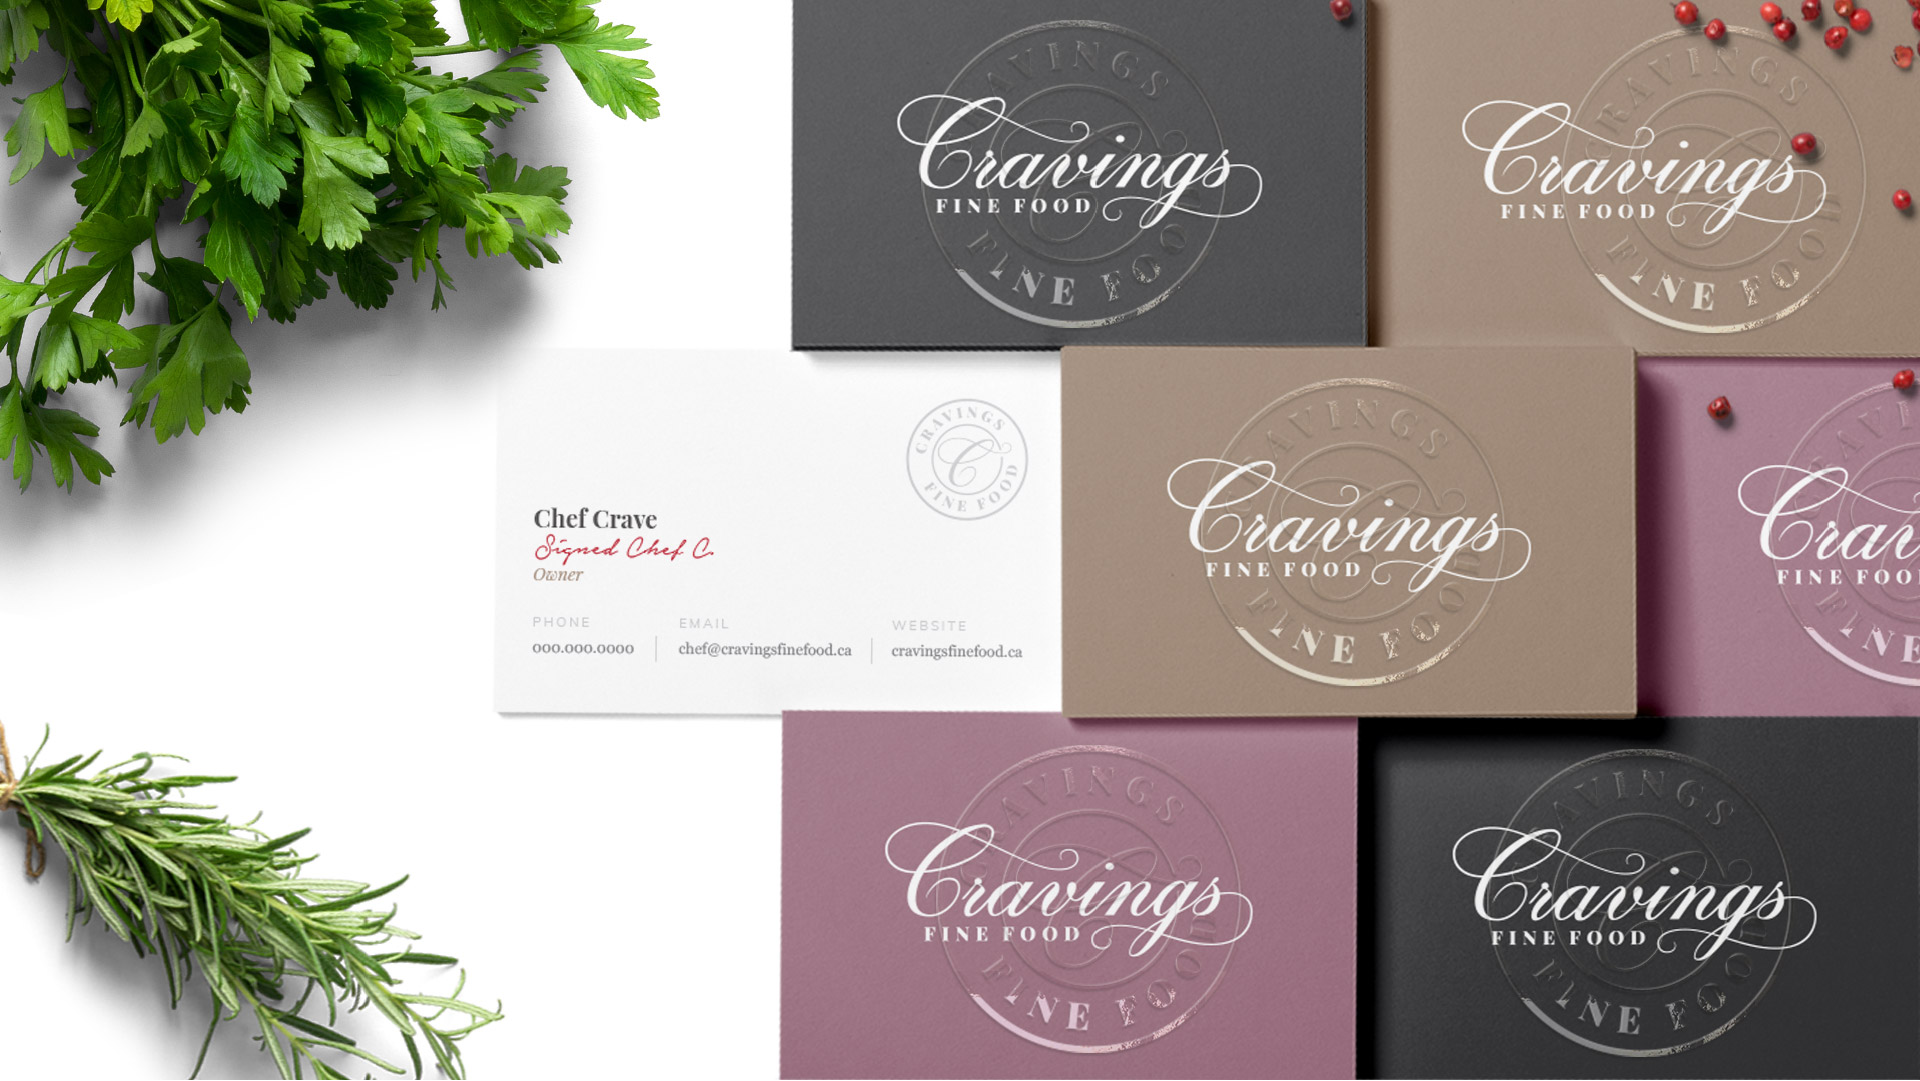 cravings fine food business cards